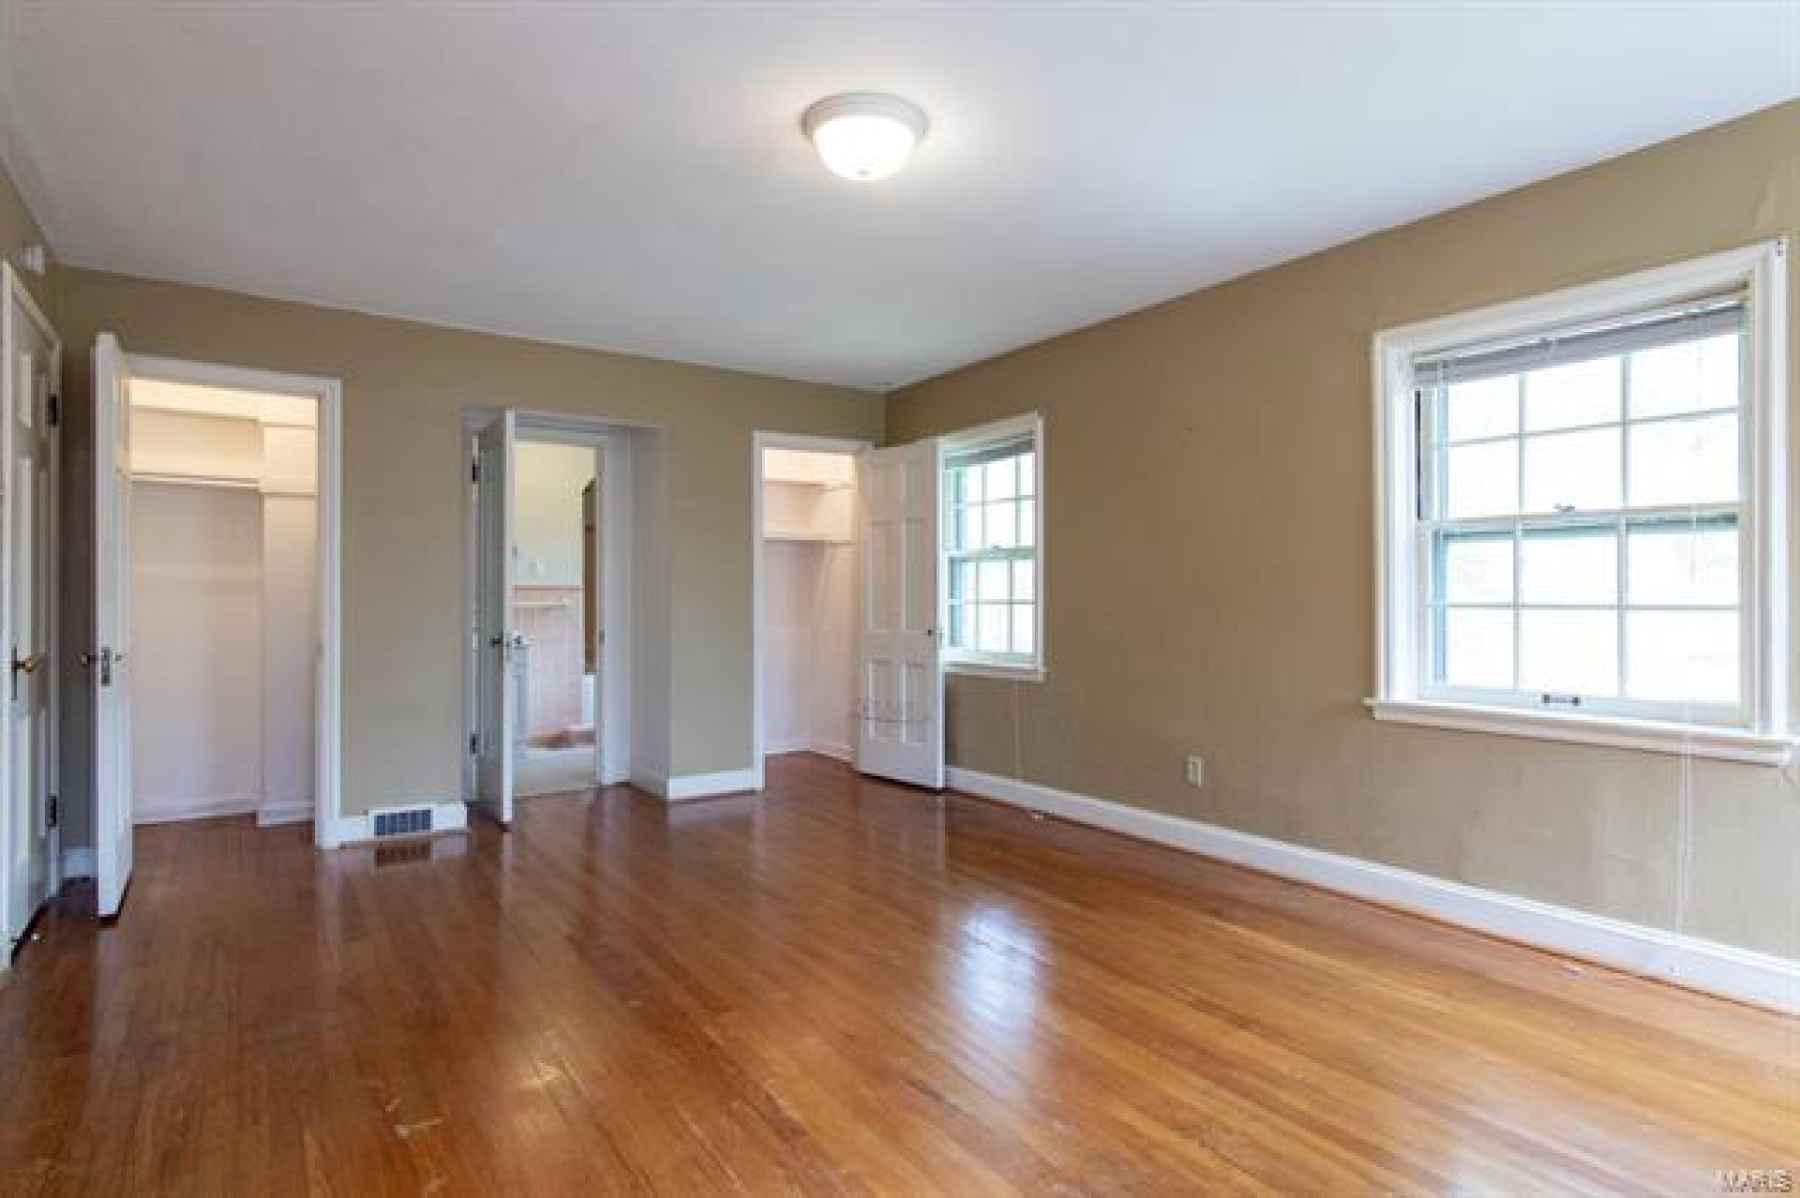 Bedroom Features 2 Closets, Access to Full Bath, Natural Light